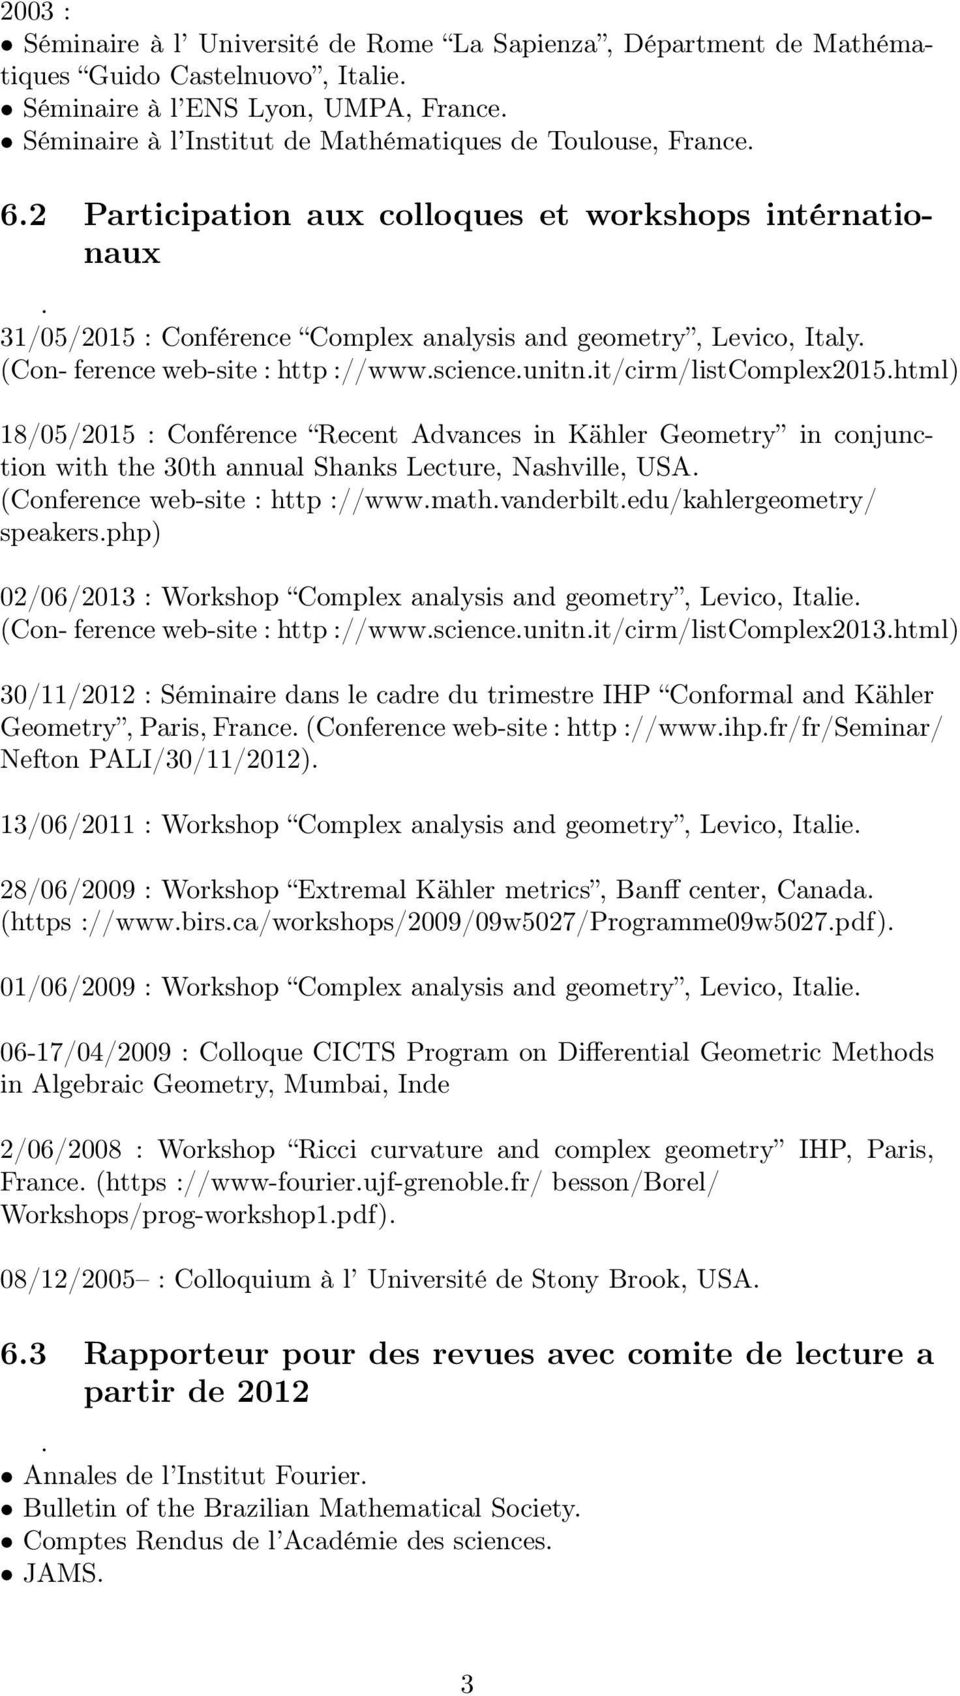 ://wwwscienceunitnit/cirm/listcomplex2015html) 18/05/2015 : Conférence Recent Advances in Kähler Geometry in conjunction with the 30th annual Shanks Lecture, Nashville, USA (Conference web-site :